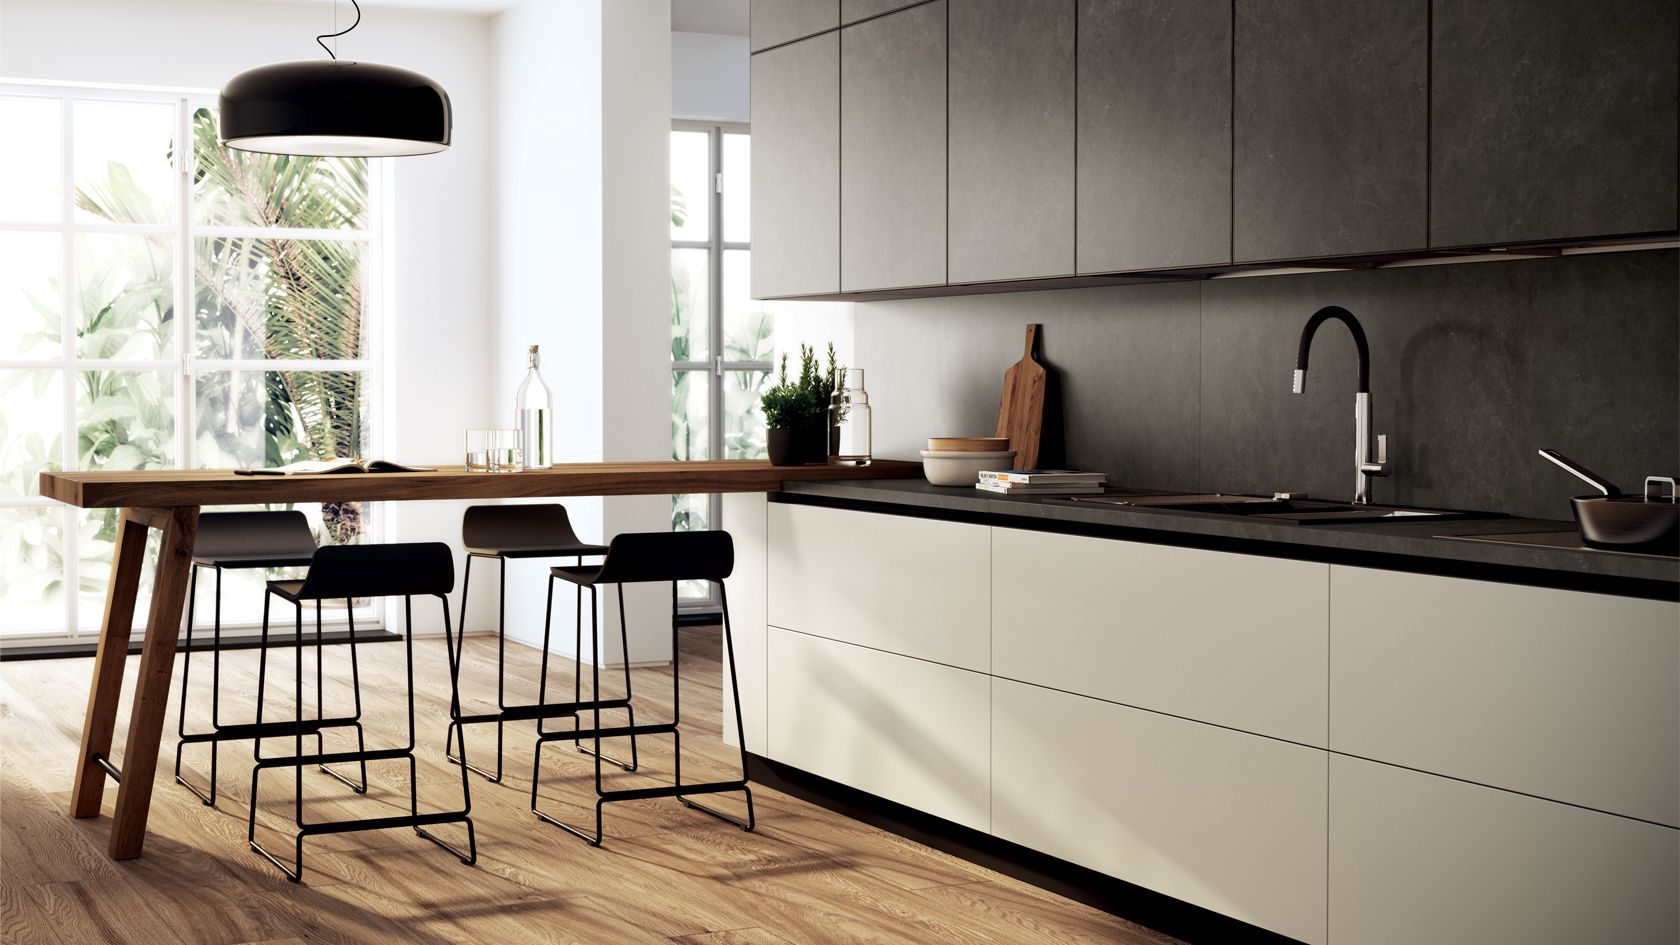 kitchen scenery scavolini like: handless drawers. angled legs for, Hause ideen